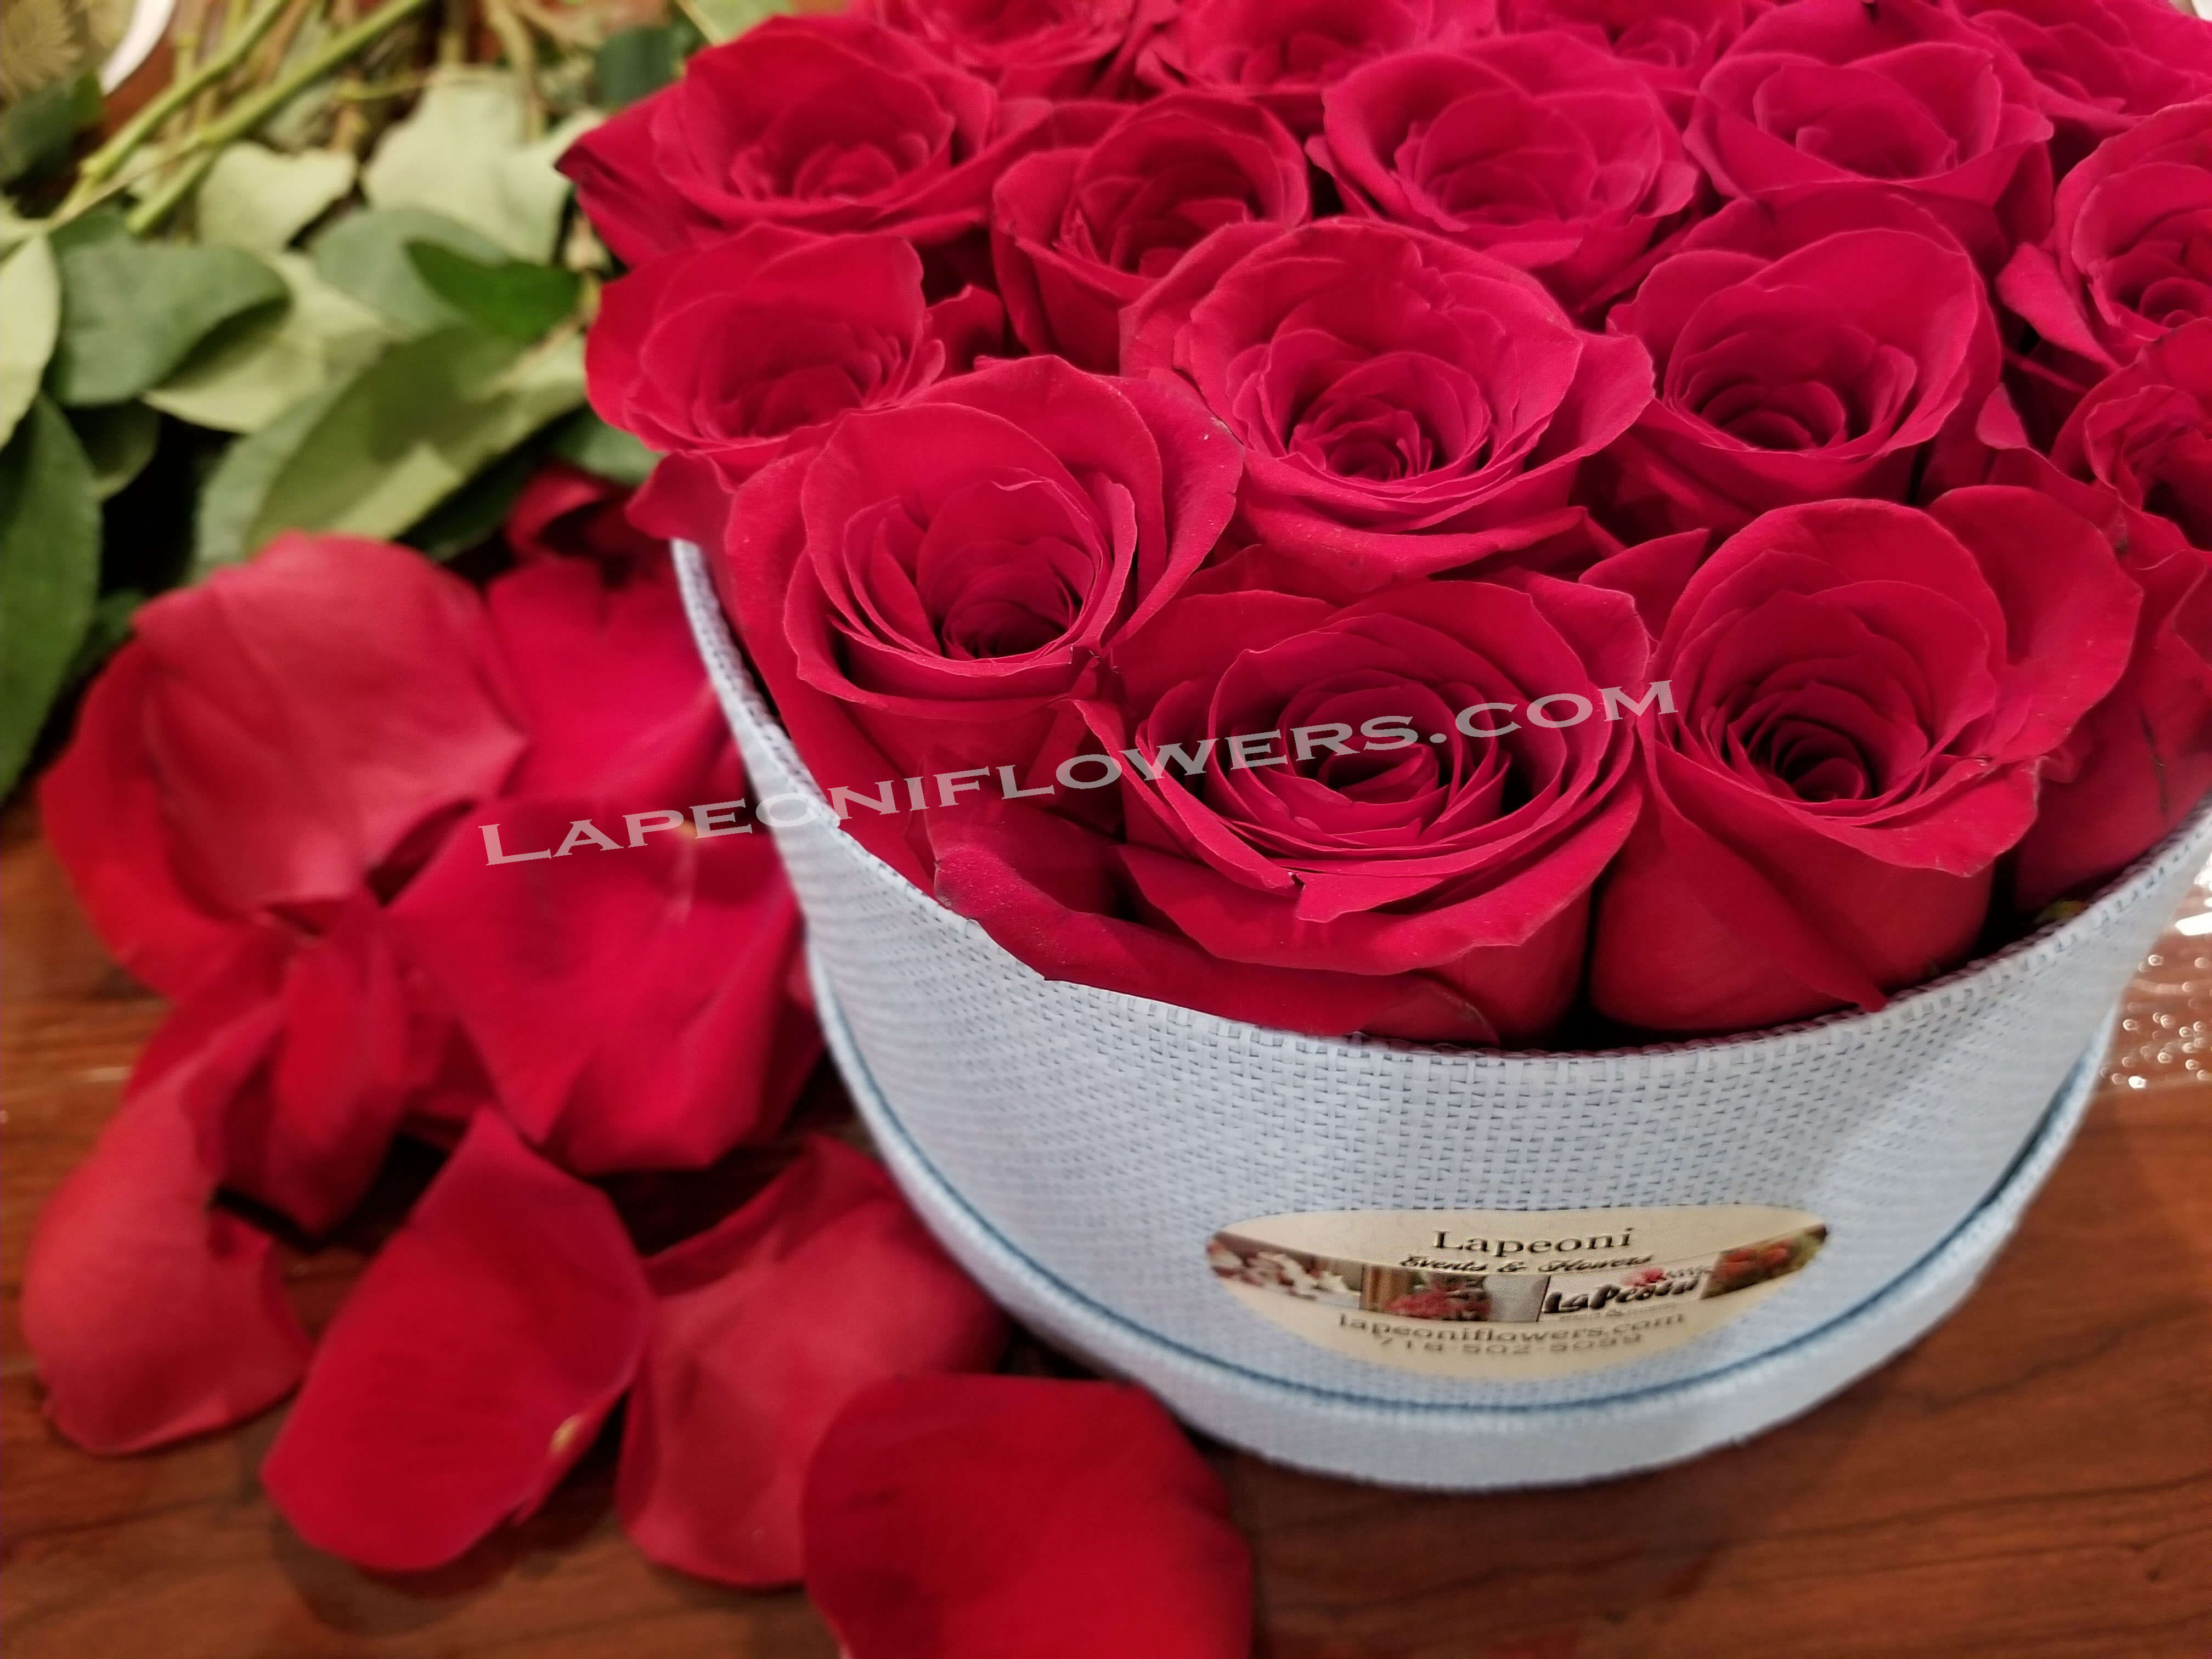 Roses in a Box - Lapeoni Flowers and Events